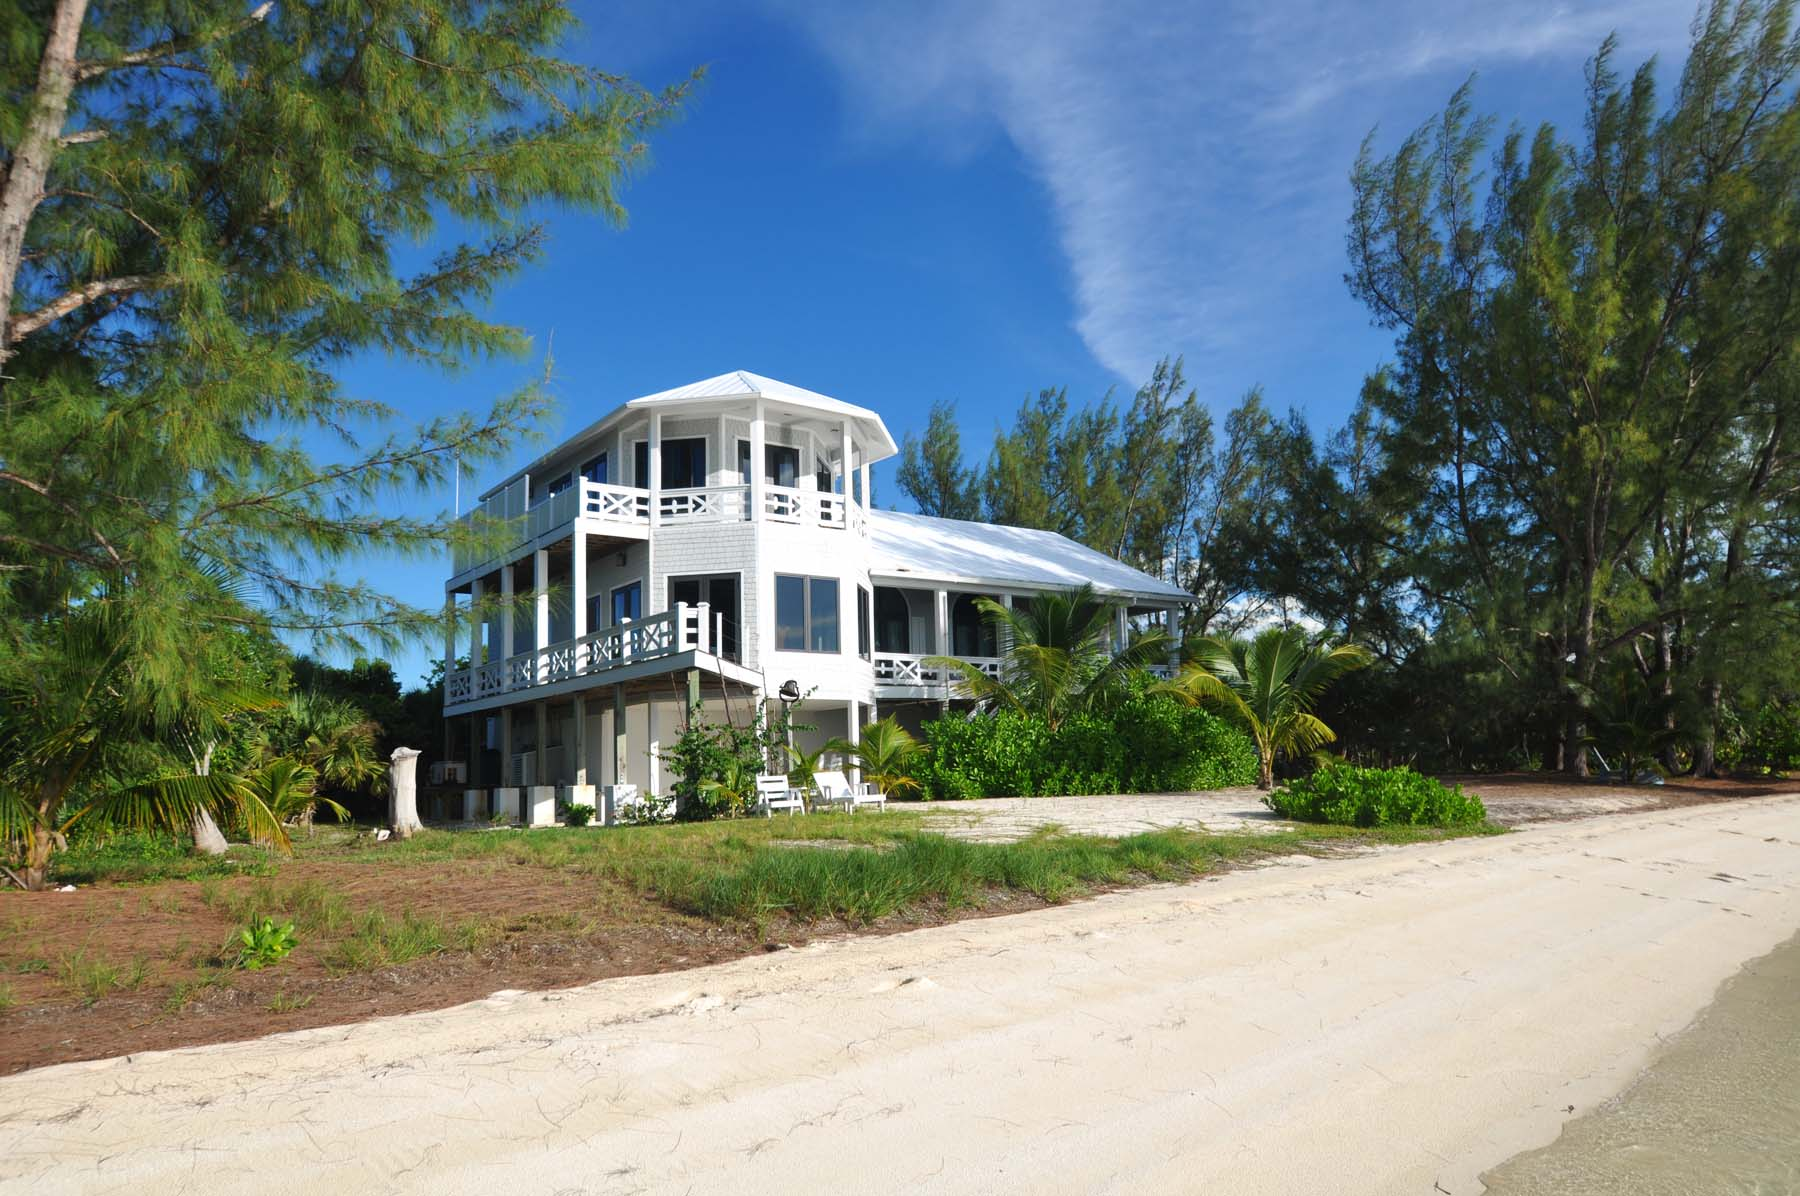 Single Family Home for Sale at Creme De La Coco Green Turtle Cay, Abaco, Bahamas